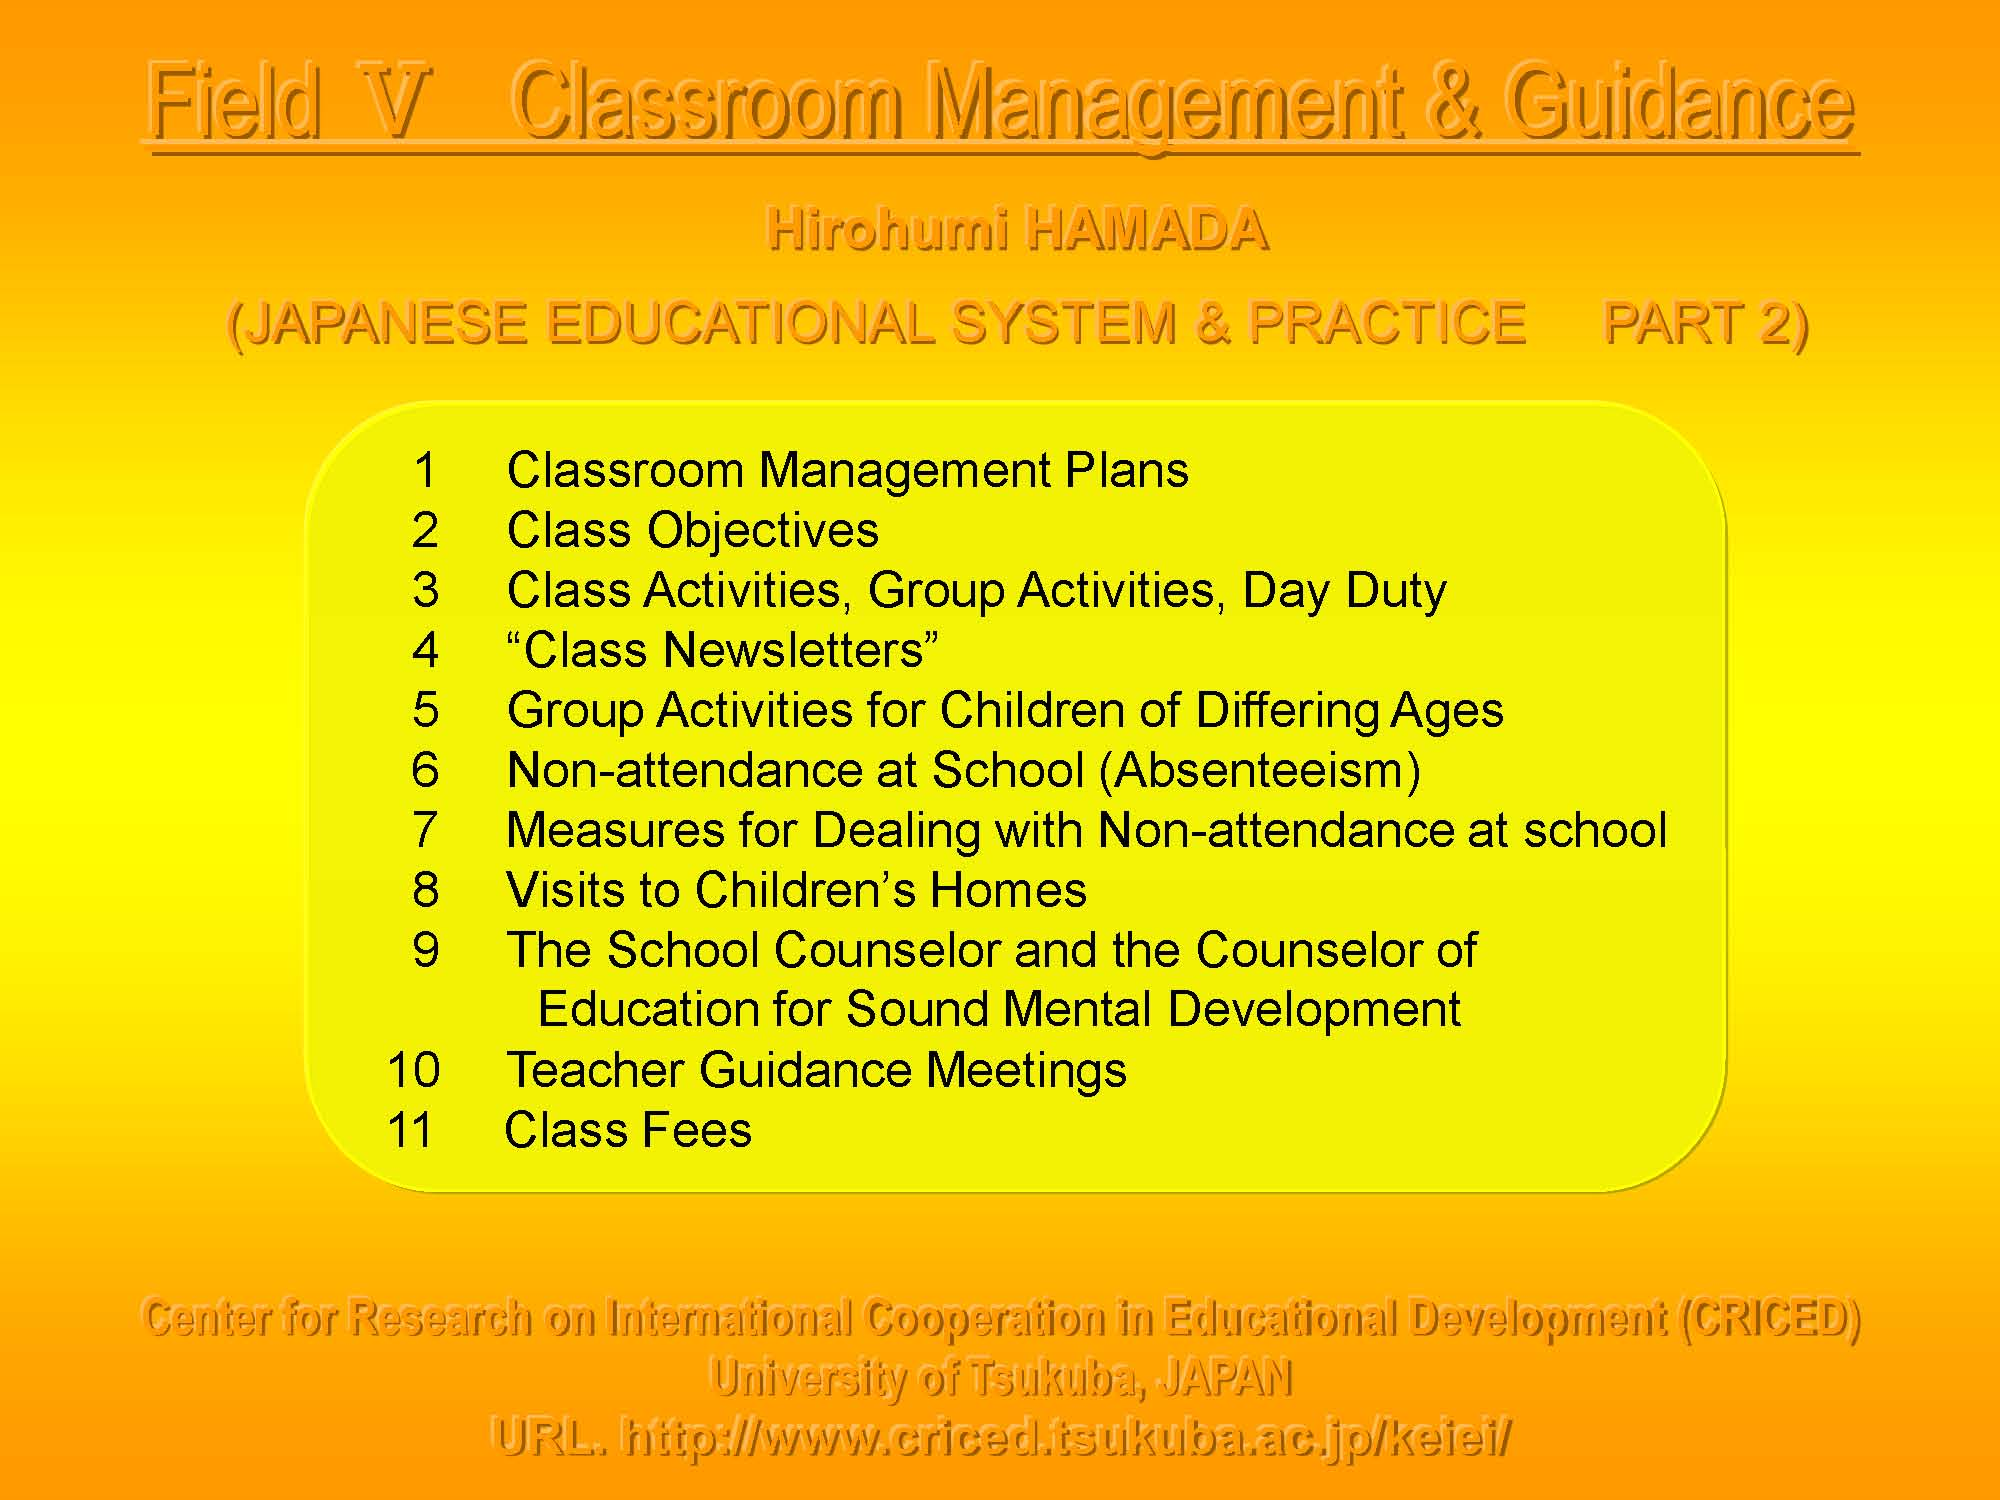 educational system & practice in japan